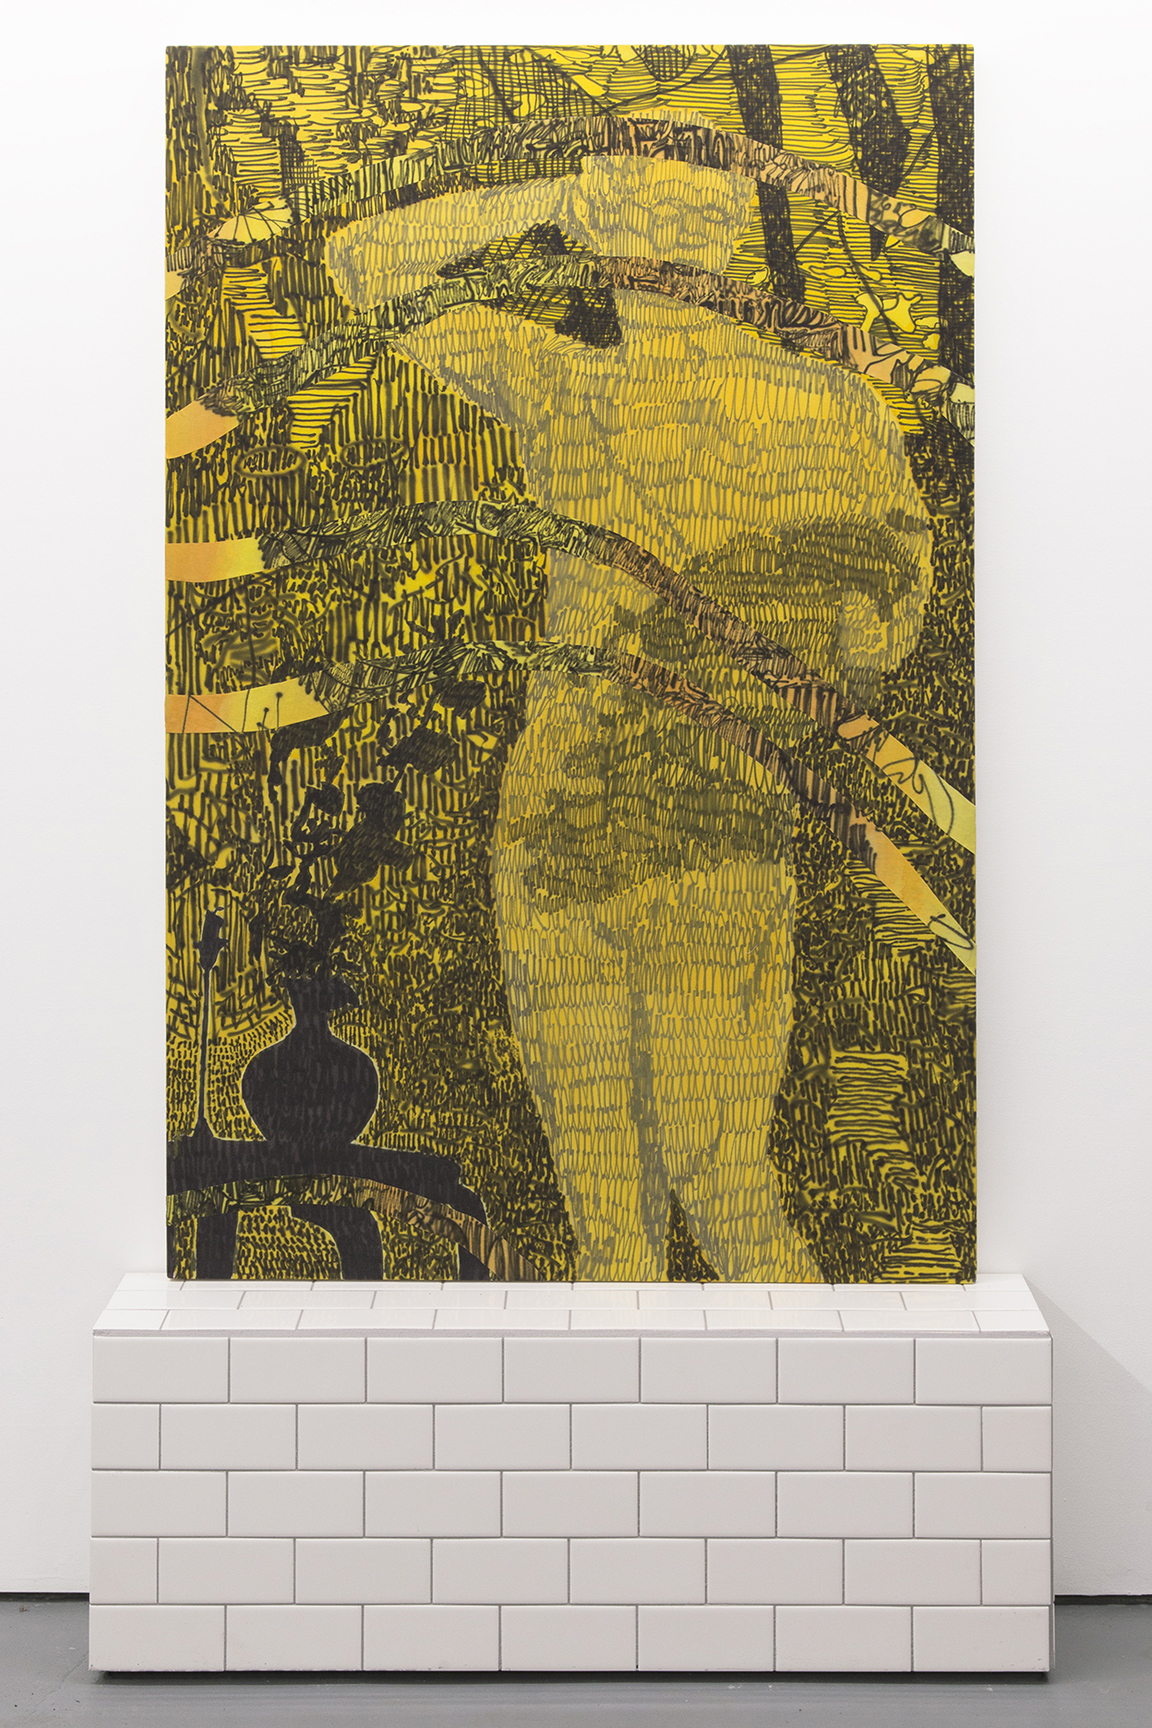 Himself being here, 2015, 38 x 60 inches, acrylic on cotton. Tile stand, wood and ceramic tiles.